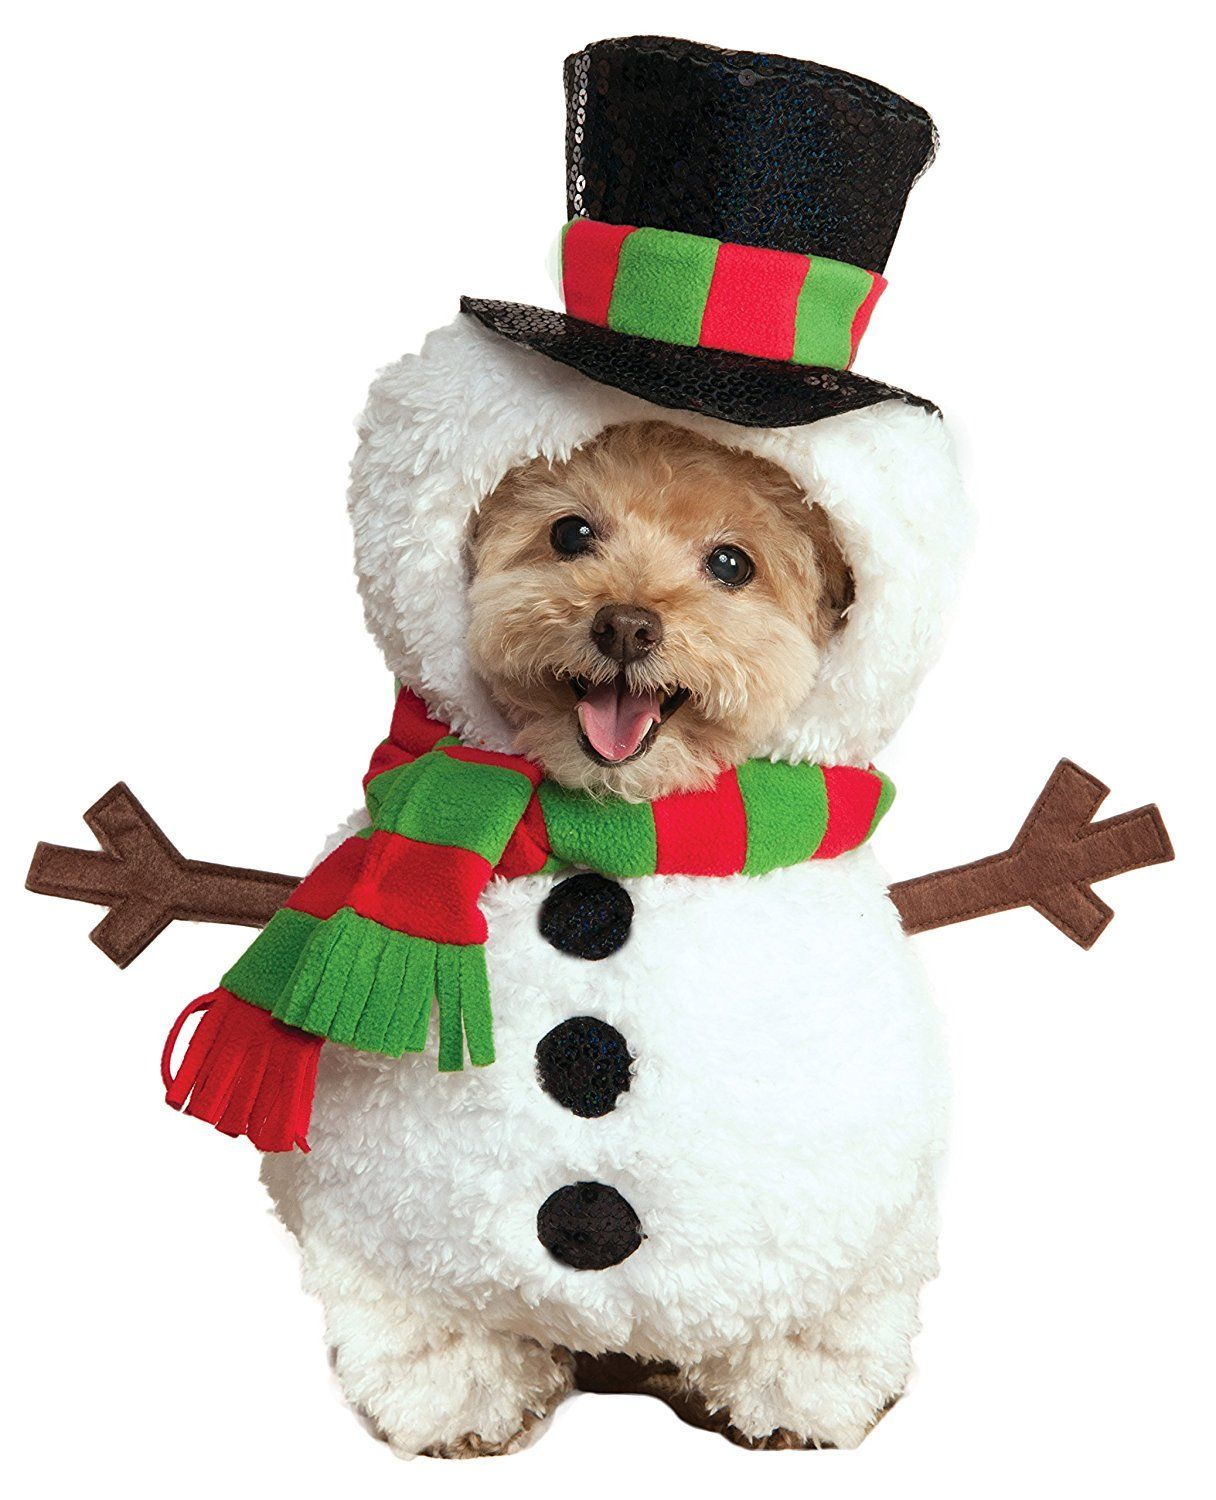 6 Best Christmas Dog Outfits to Get Your Dog in the Holiday